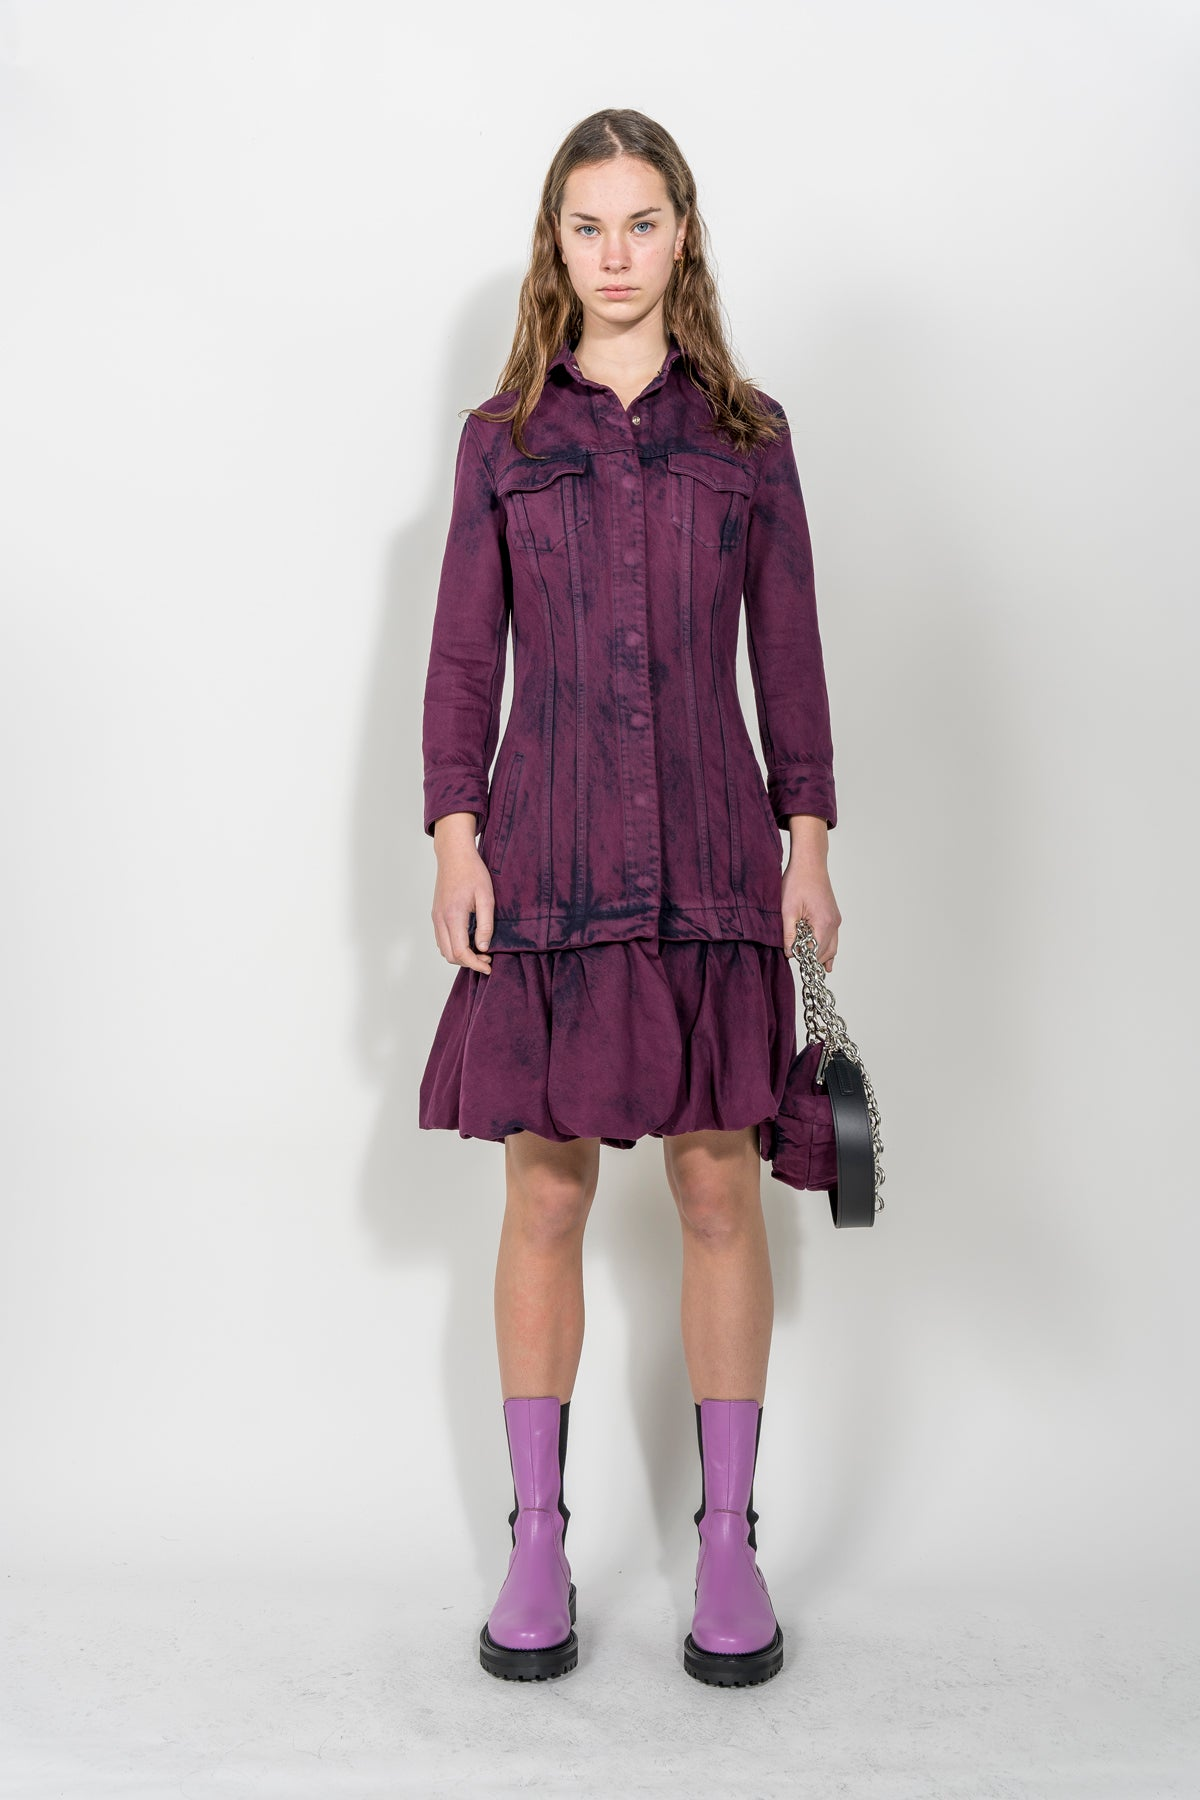 AUBERGINE FITTED COAT WITH PUFF HEM marques almeida